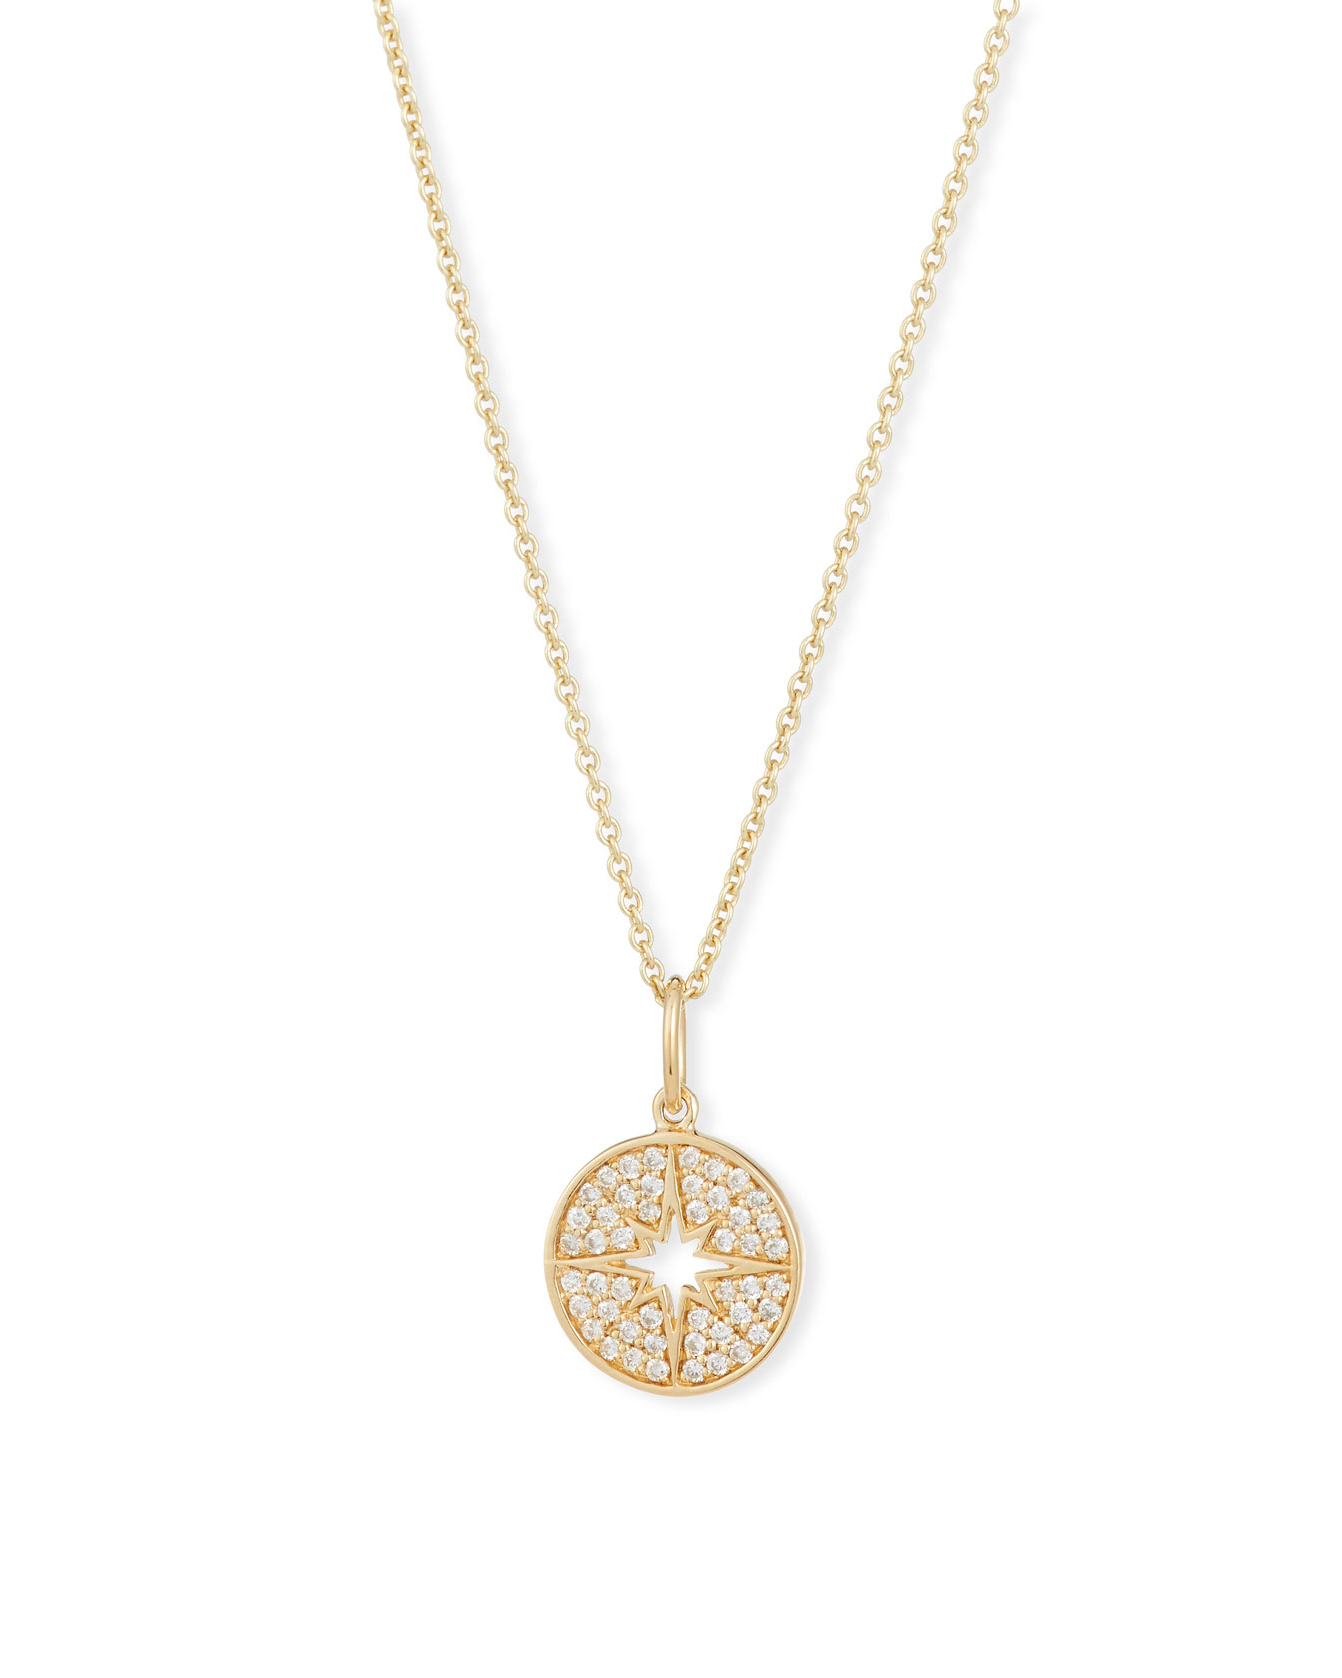 Small Starburst Medallion Necklace with Diamonds